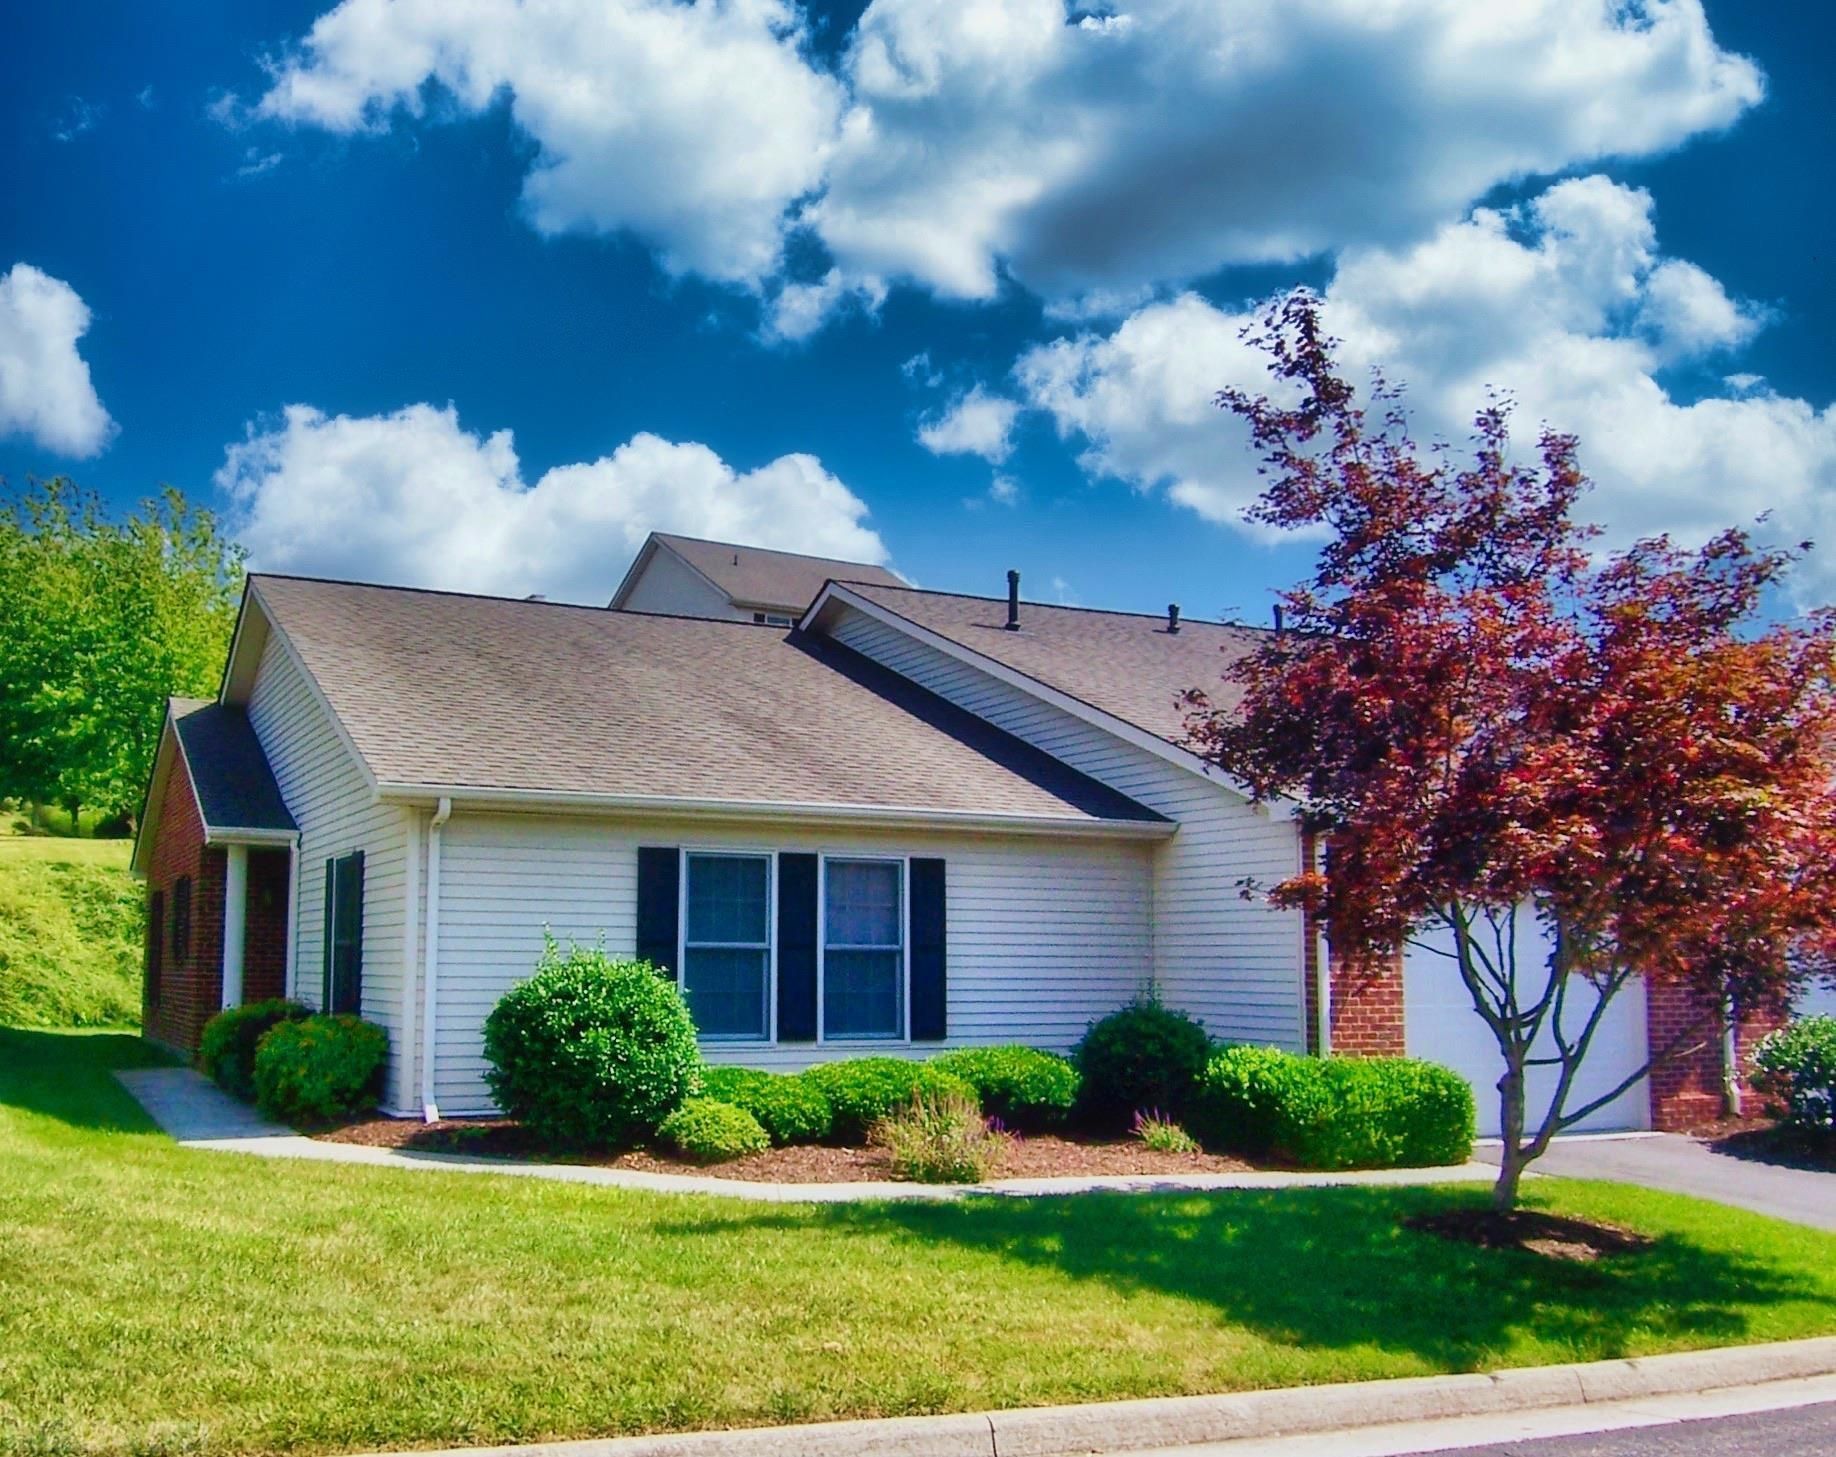 Great one level floor plan in the much sought after complex of Vista Pointe. The floor plan is a nice open floor plan. Close to everything. Even the Blacksburg bus stops near to the unit. Walk to Blacksburg for events.  Great deck. The Master bath has a walk in shower as well as a jacuzzi tub.  Garage. The utilities are underground and the streets have street lamps on both ends. You will love this quiet complex with professional landscaping.